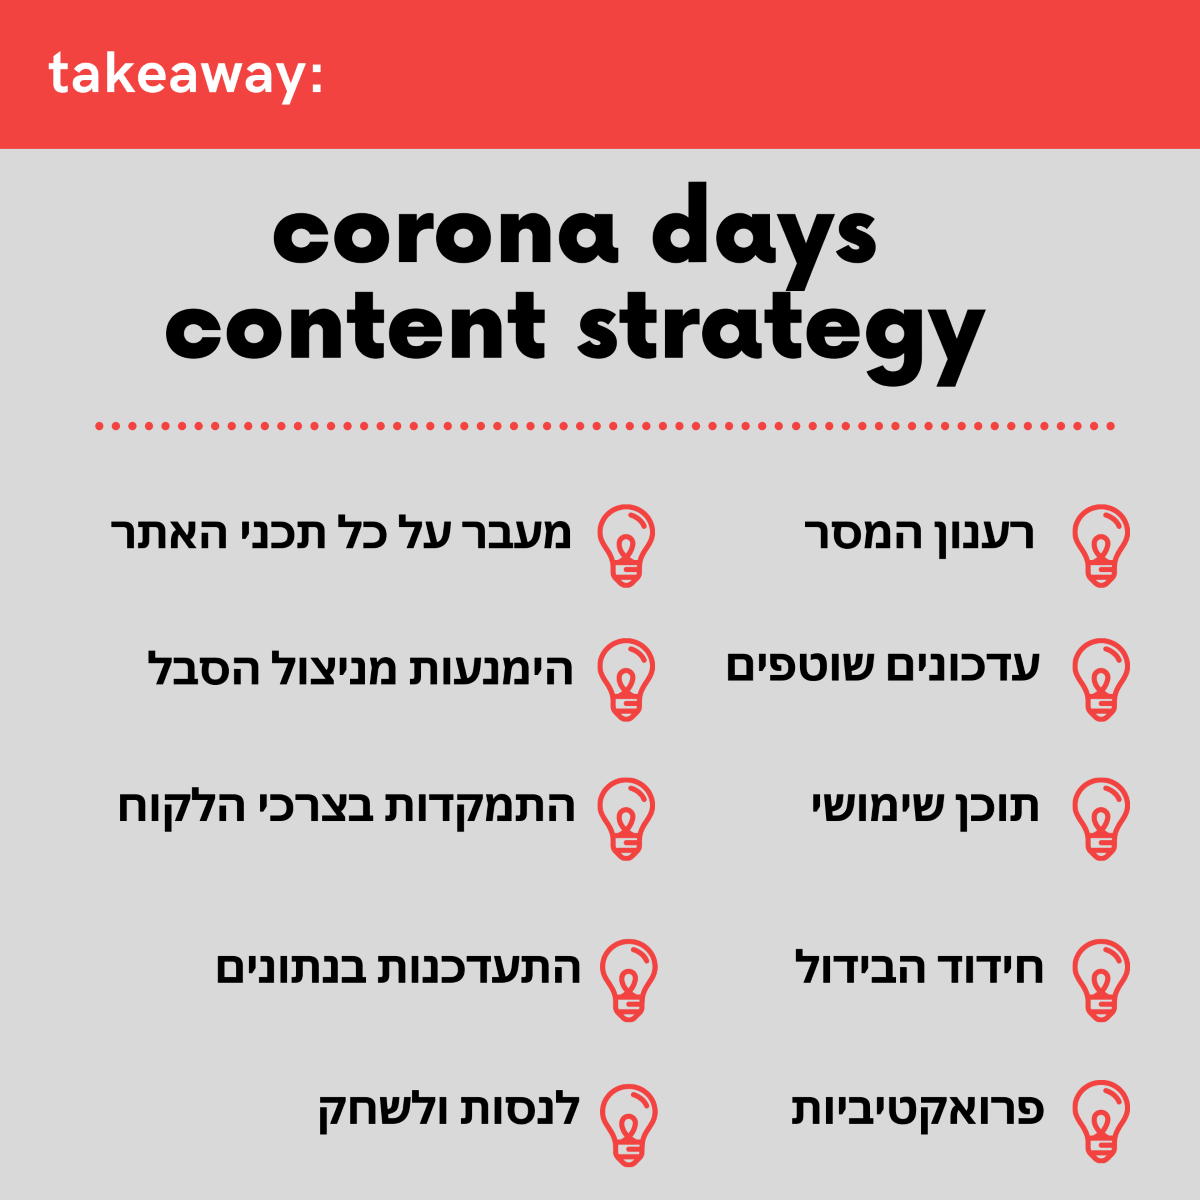 corona days content strategy